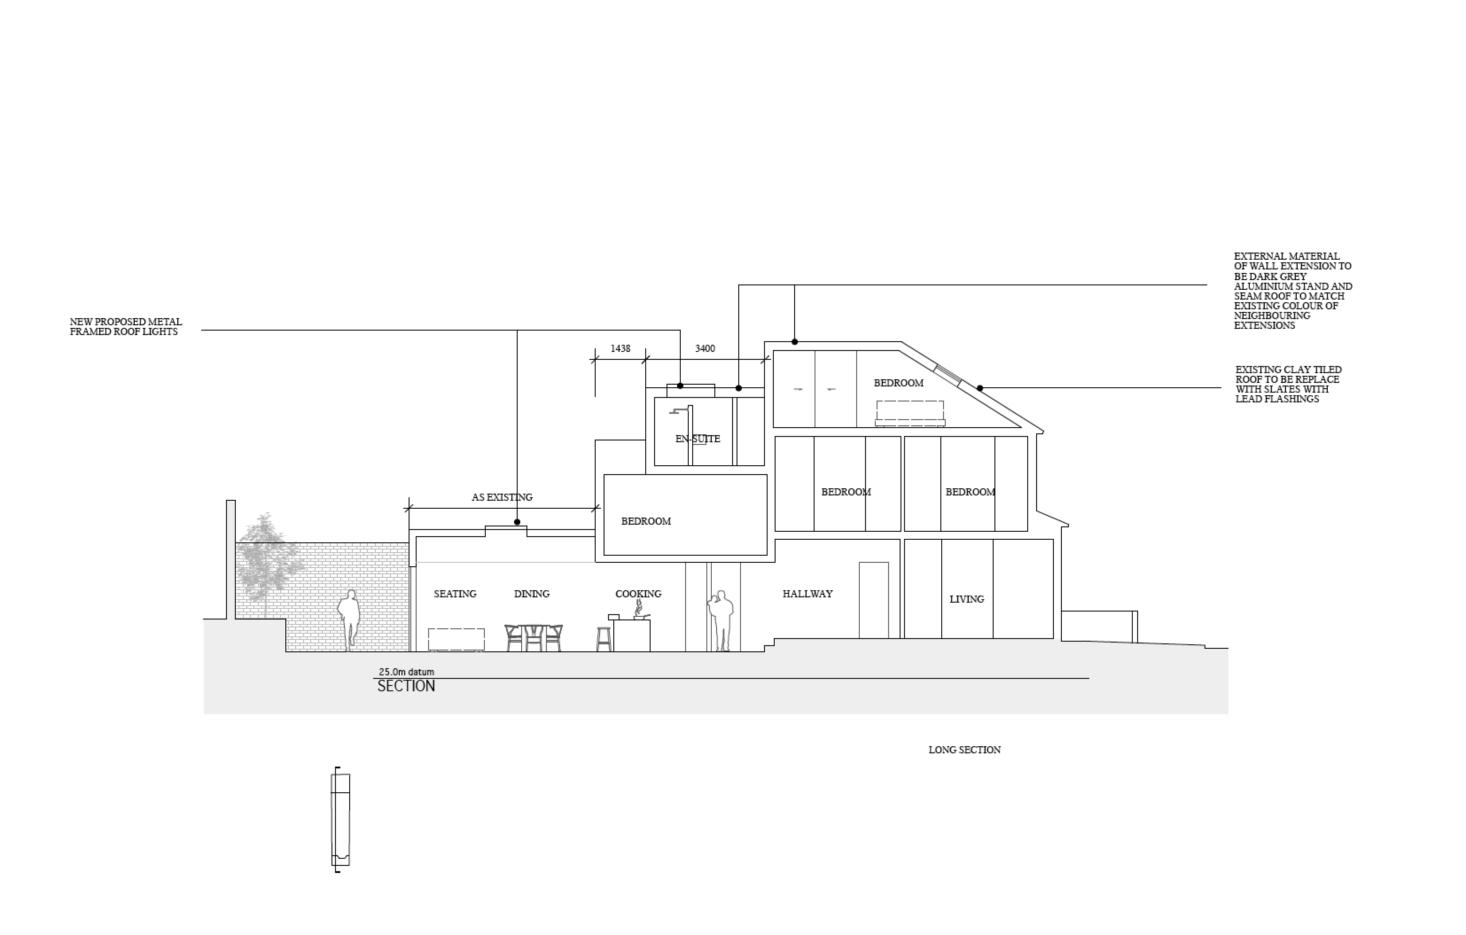 A cross-section plan details the new flow: a small living area in the front of the house, three bedrooms on the middle floor, and the master bedroom and bath incorporated into the roof and extensions.